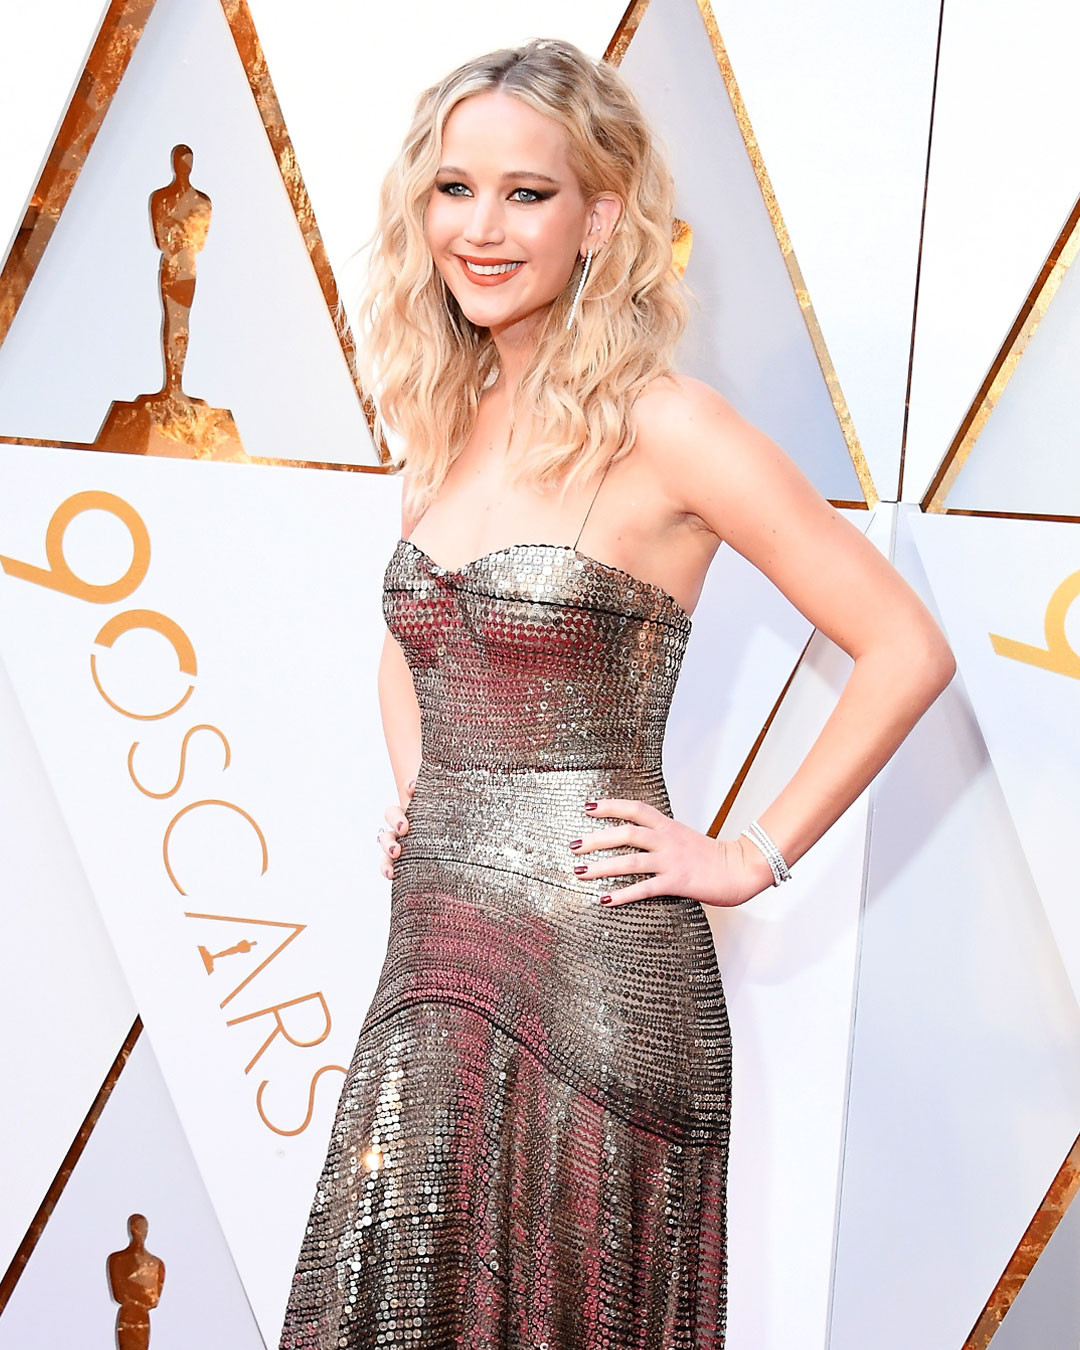 b45d62c3b097 How To Get An Oscar Worthy Red Carpet Look - Microbladers - Las Vegas